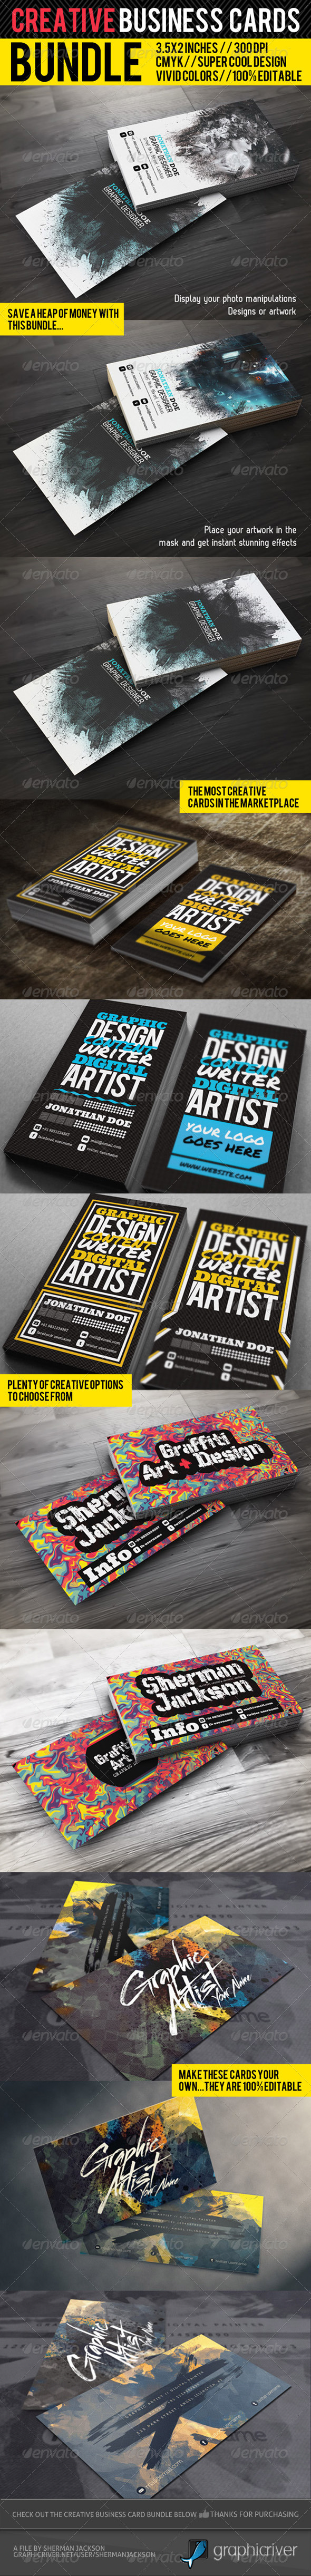 Creative Business Card Premium Bundle - Creative Business Cards